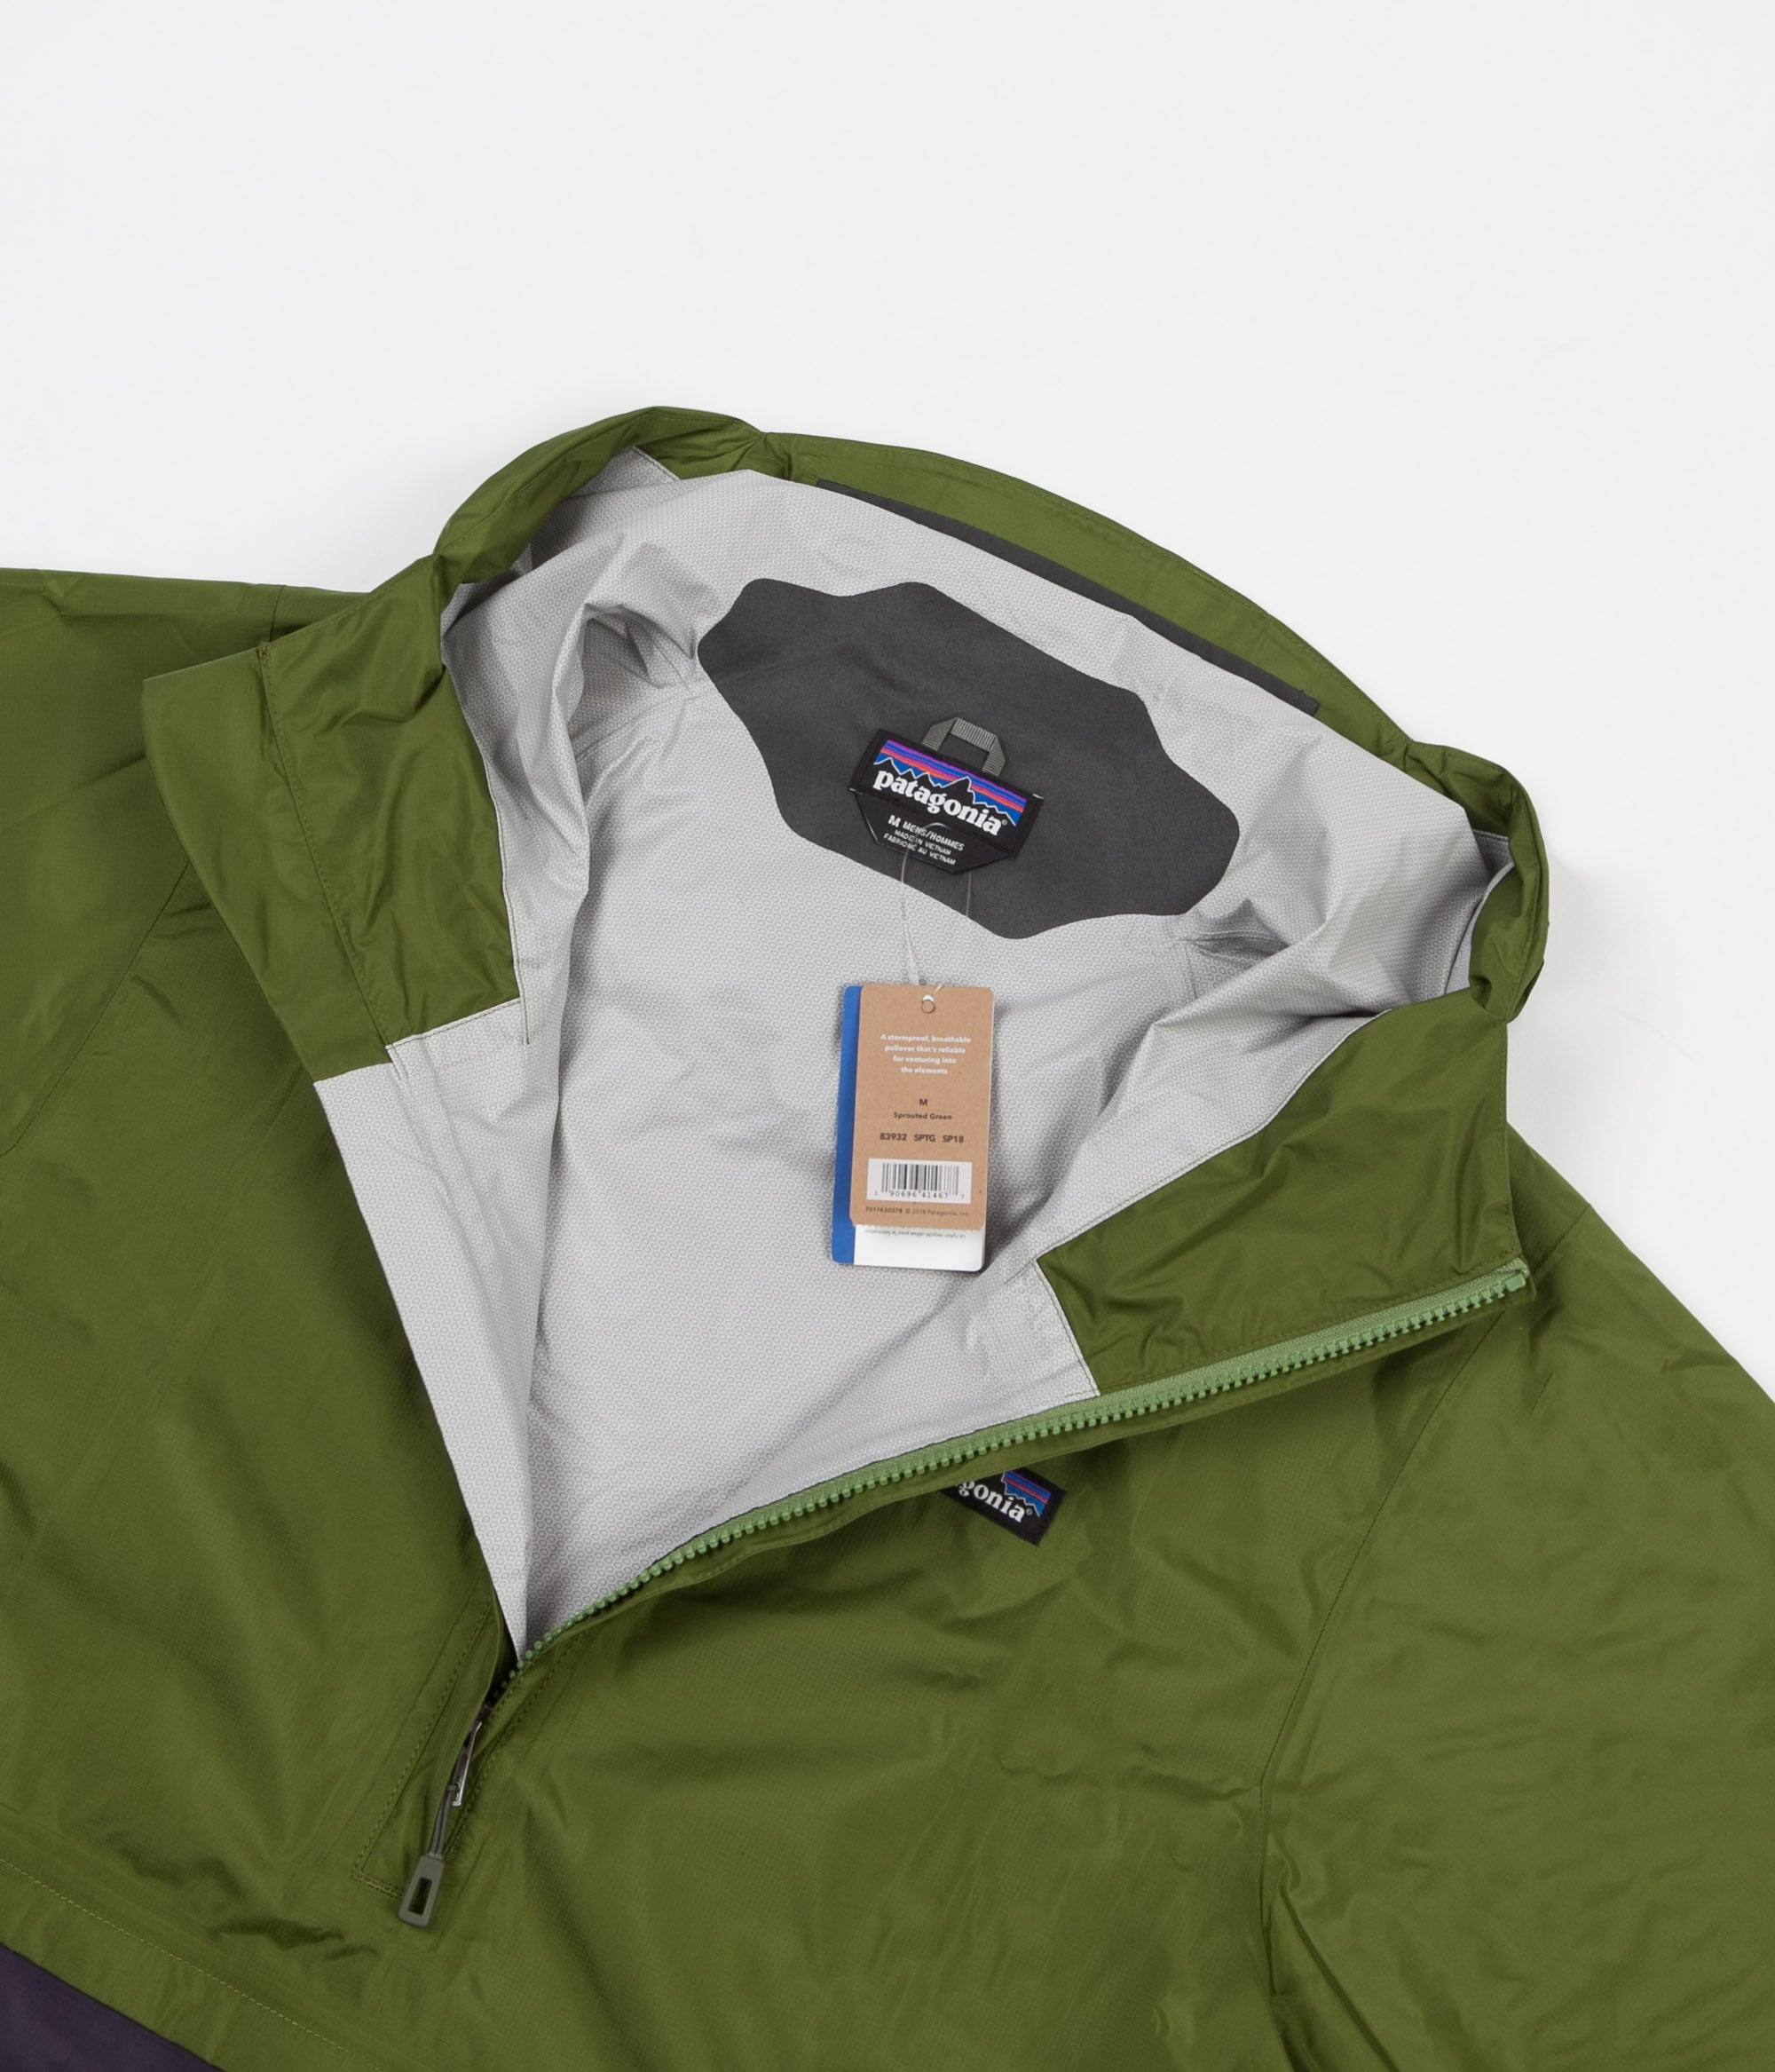 ... Patagonia Torrentshell Pullover Jacket - Sprouted Green ... 06eb1ed51